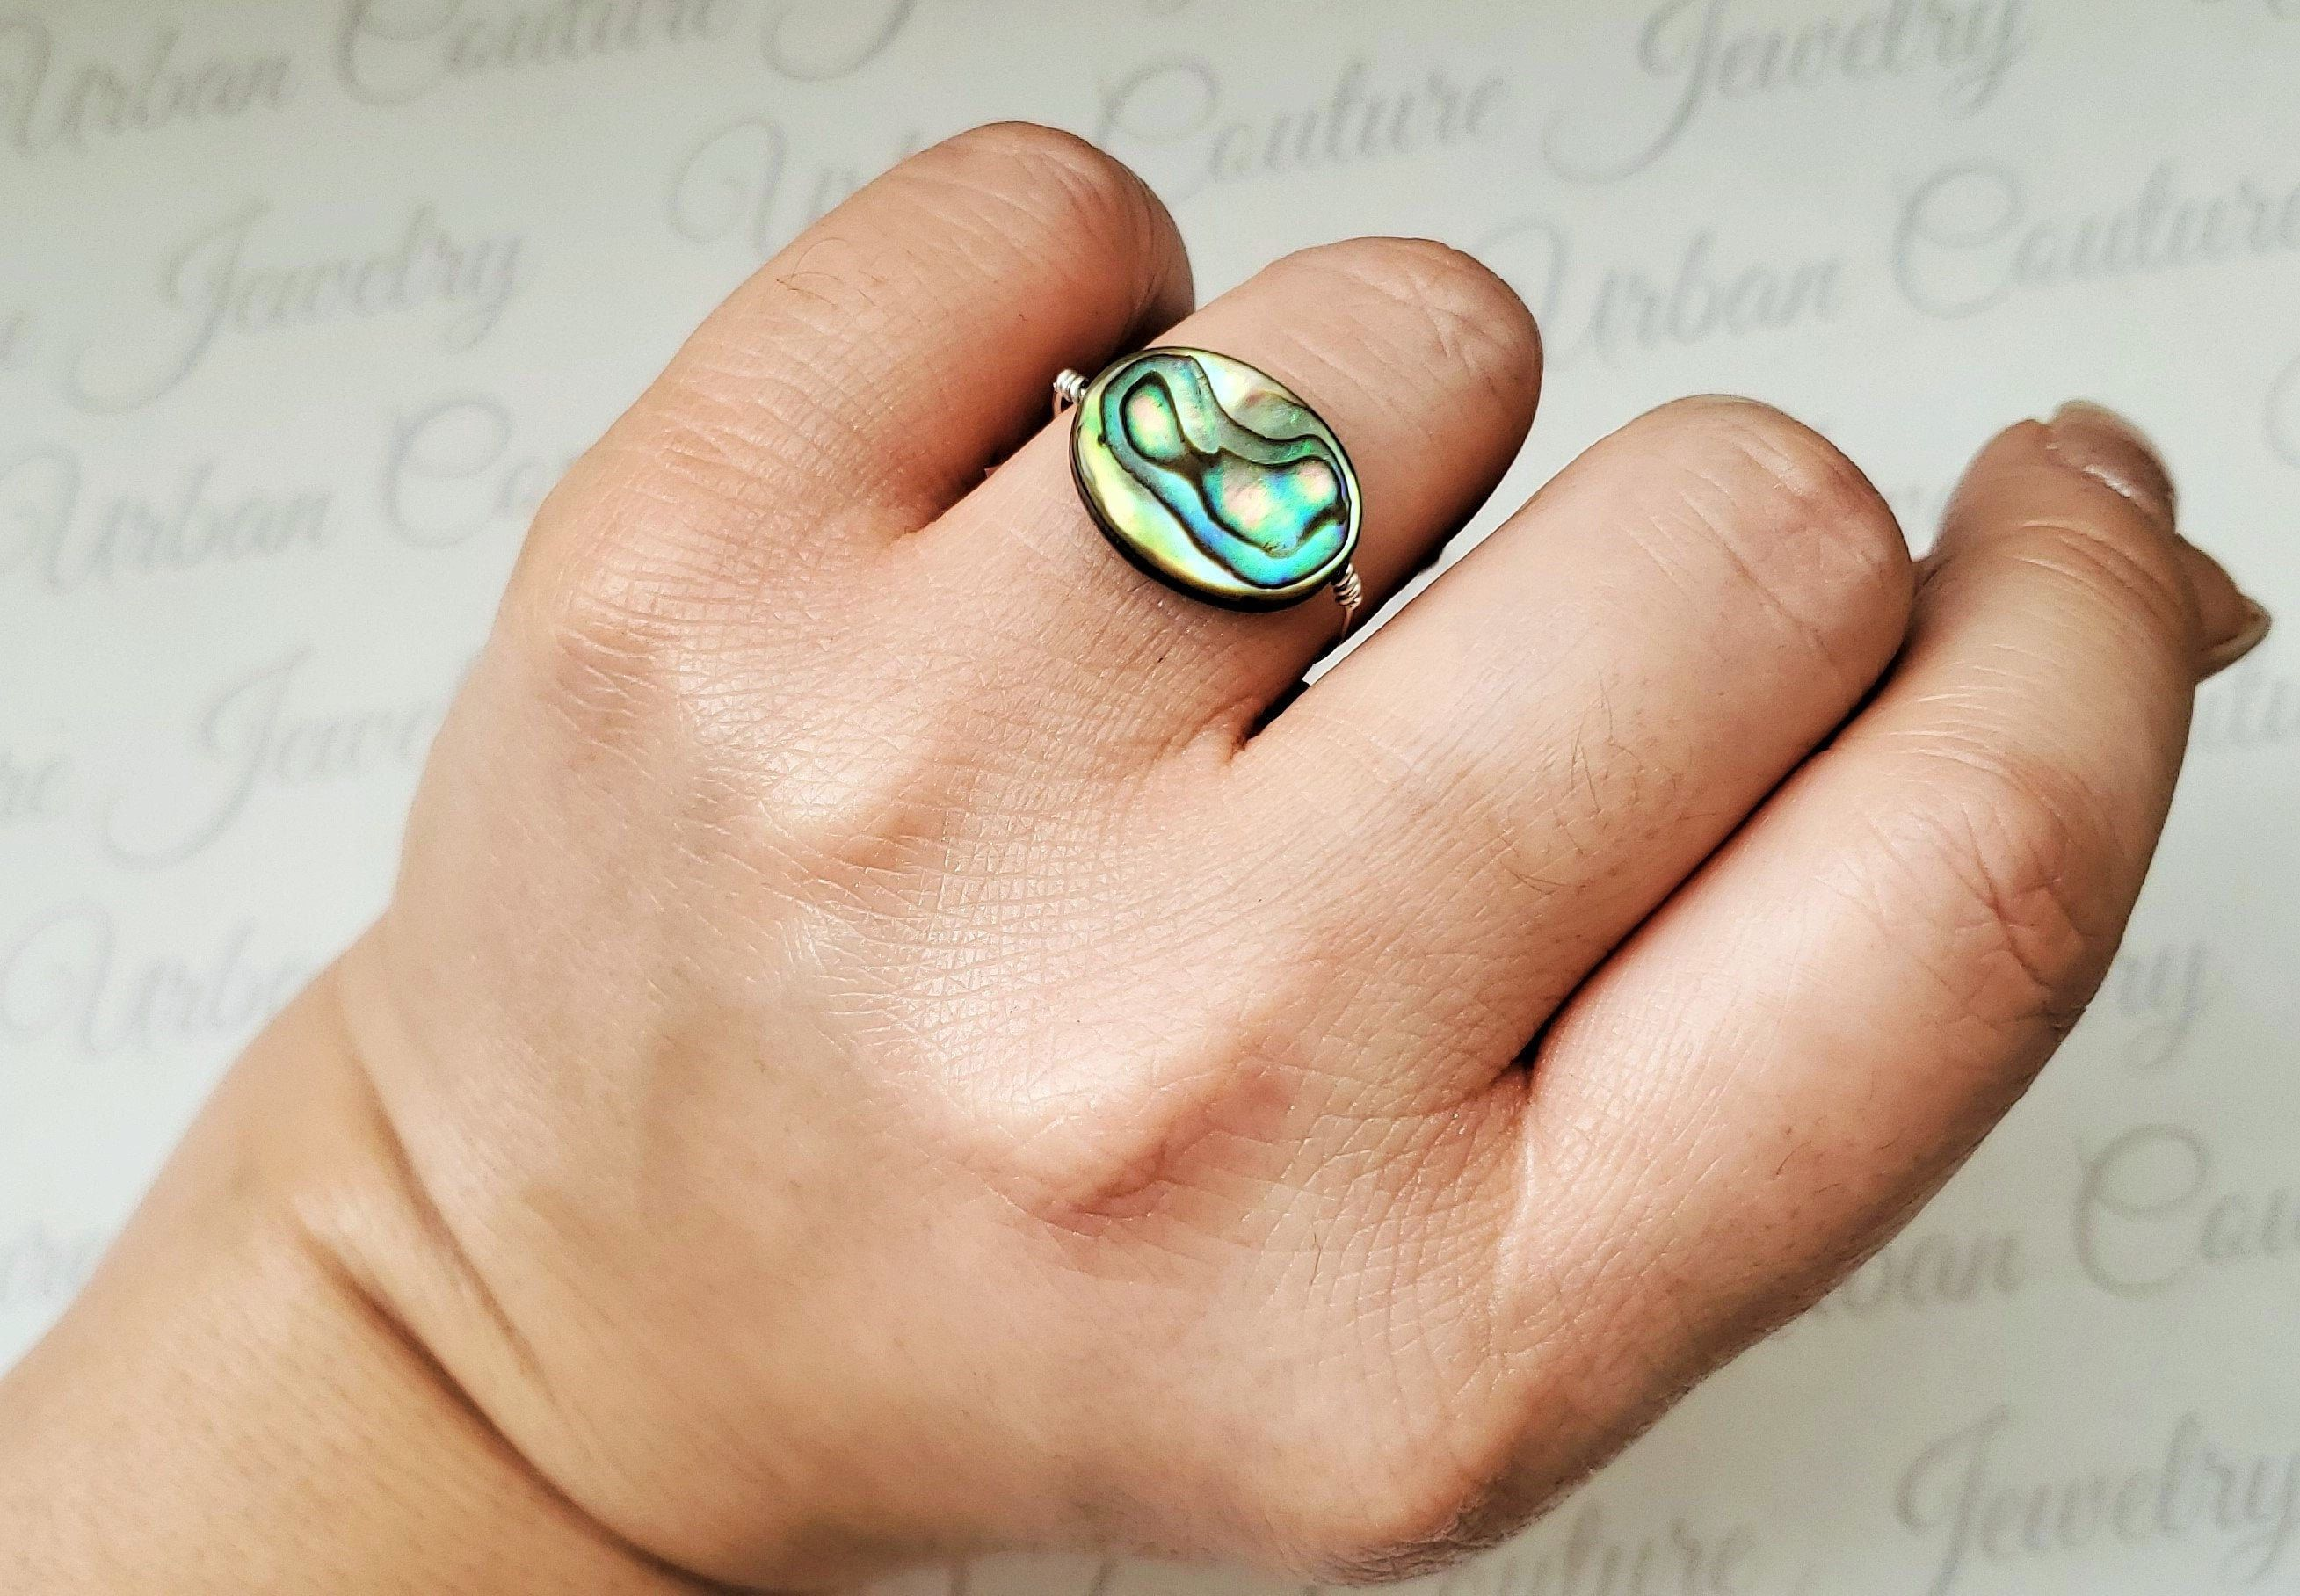 Abalone Shell Peridot Quartz Ring Woman Gemstone Ring Jewellery Gift For Girl New Style Ring Sterling Silver Plated Ring Gift For Her